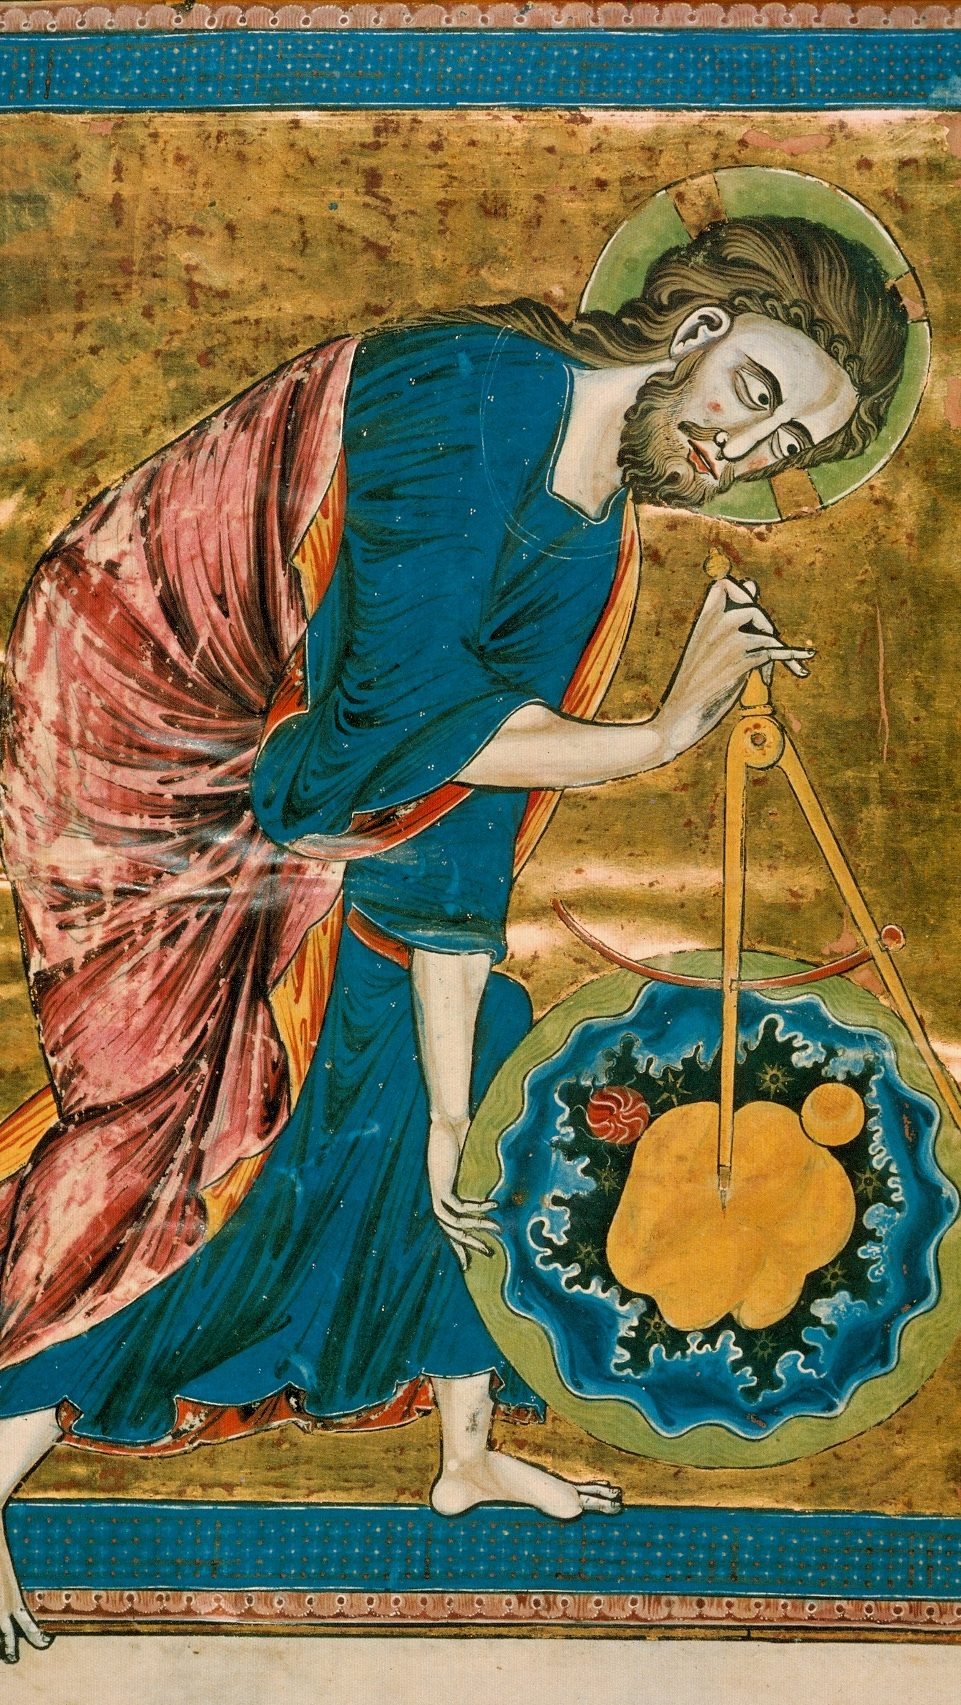 Images showing God the Geometer